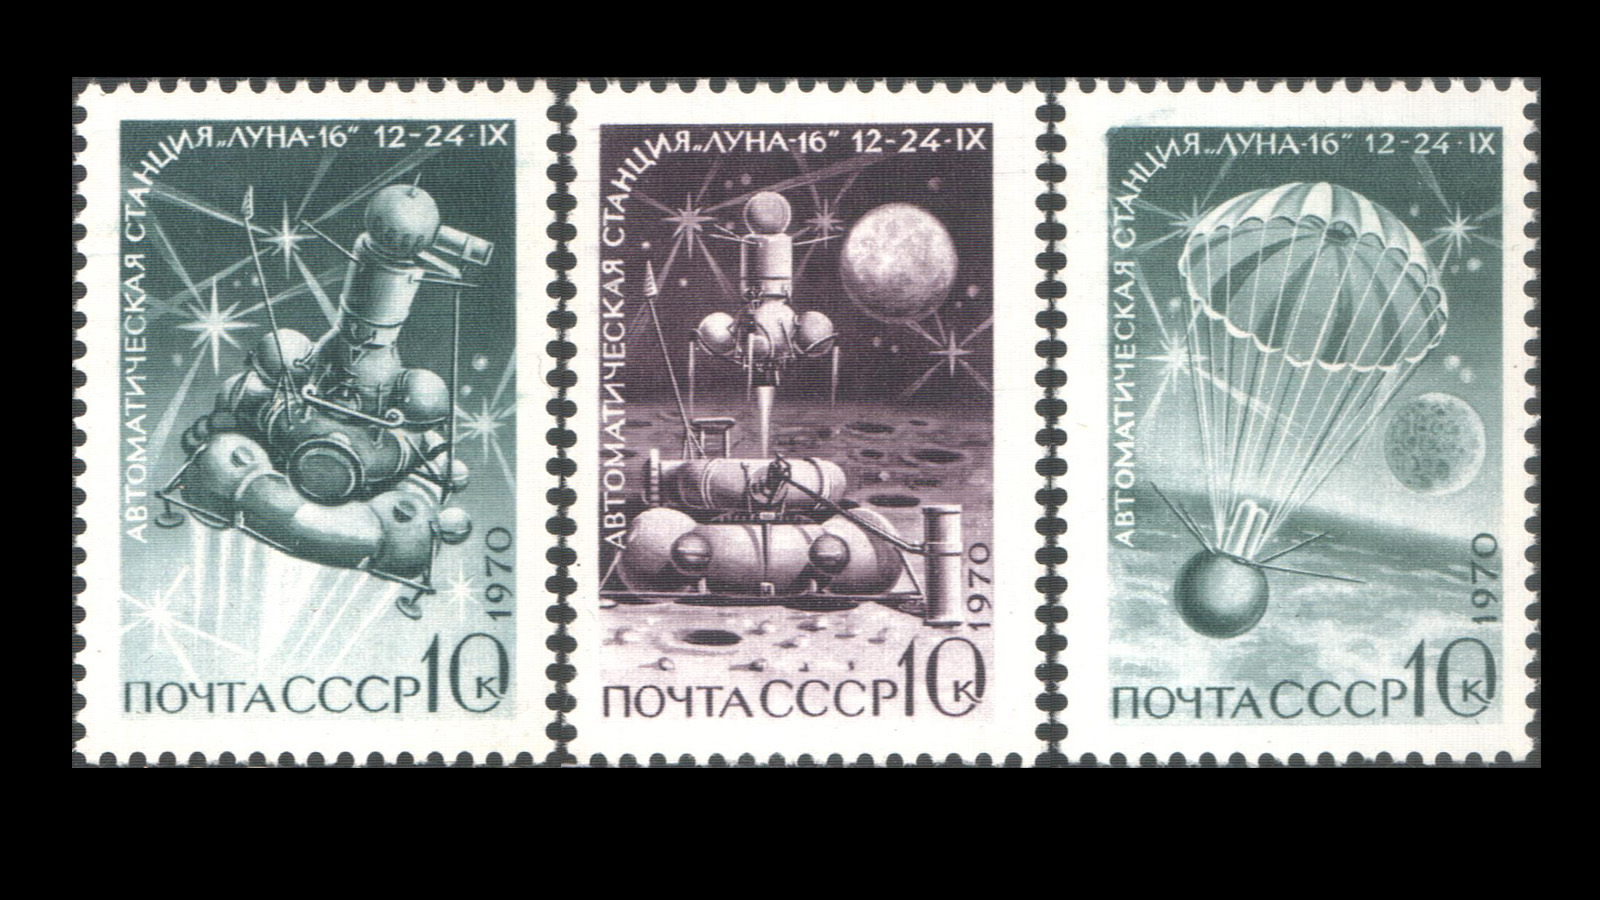 Color image of three stamps depicting a spacecraft exploring the lunar surface.